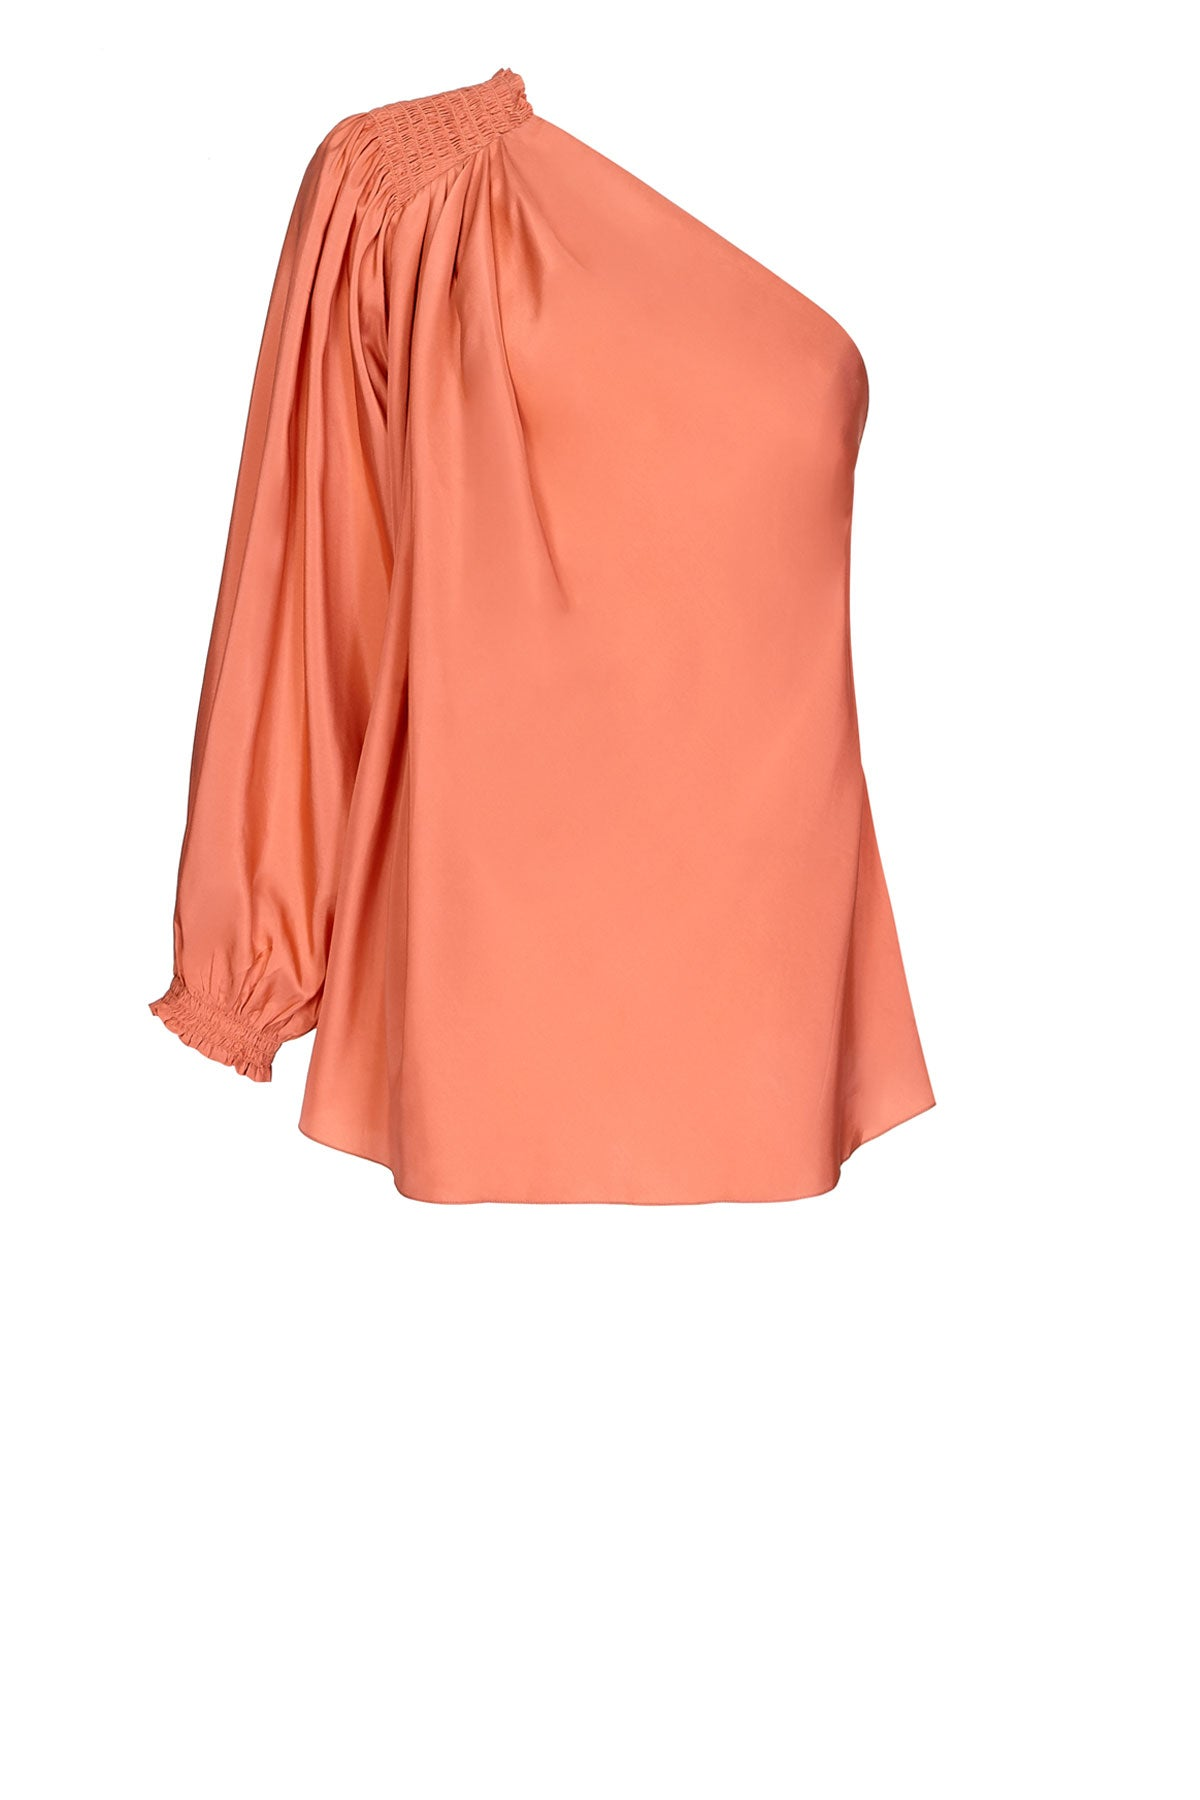 Diana Blouse Blush